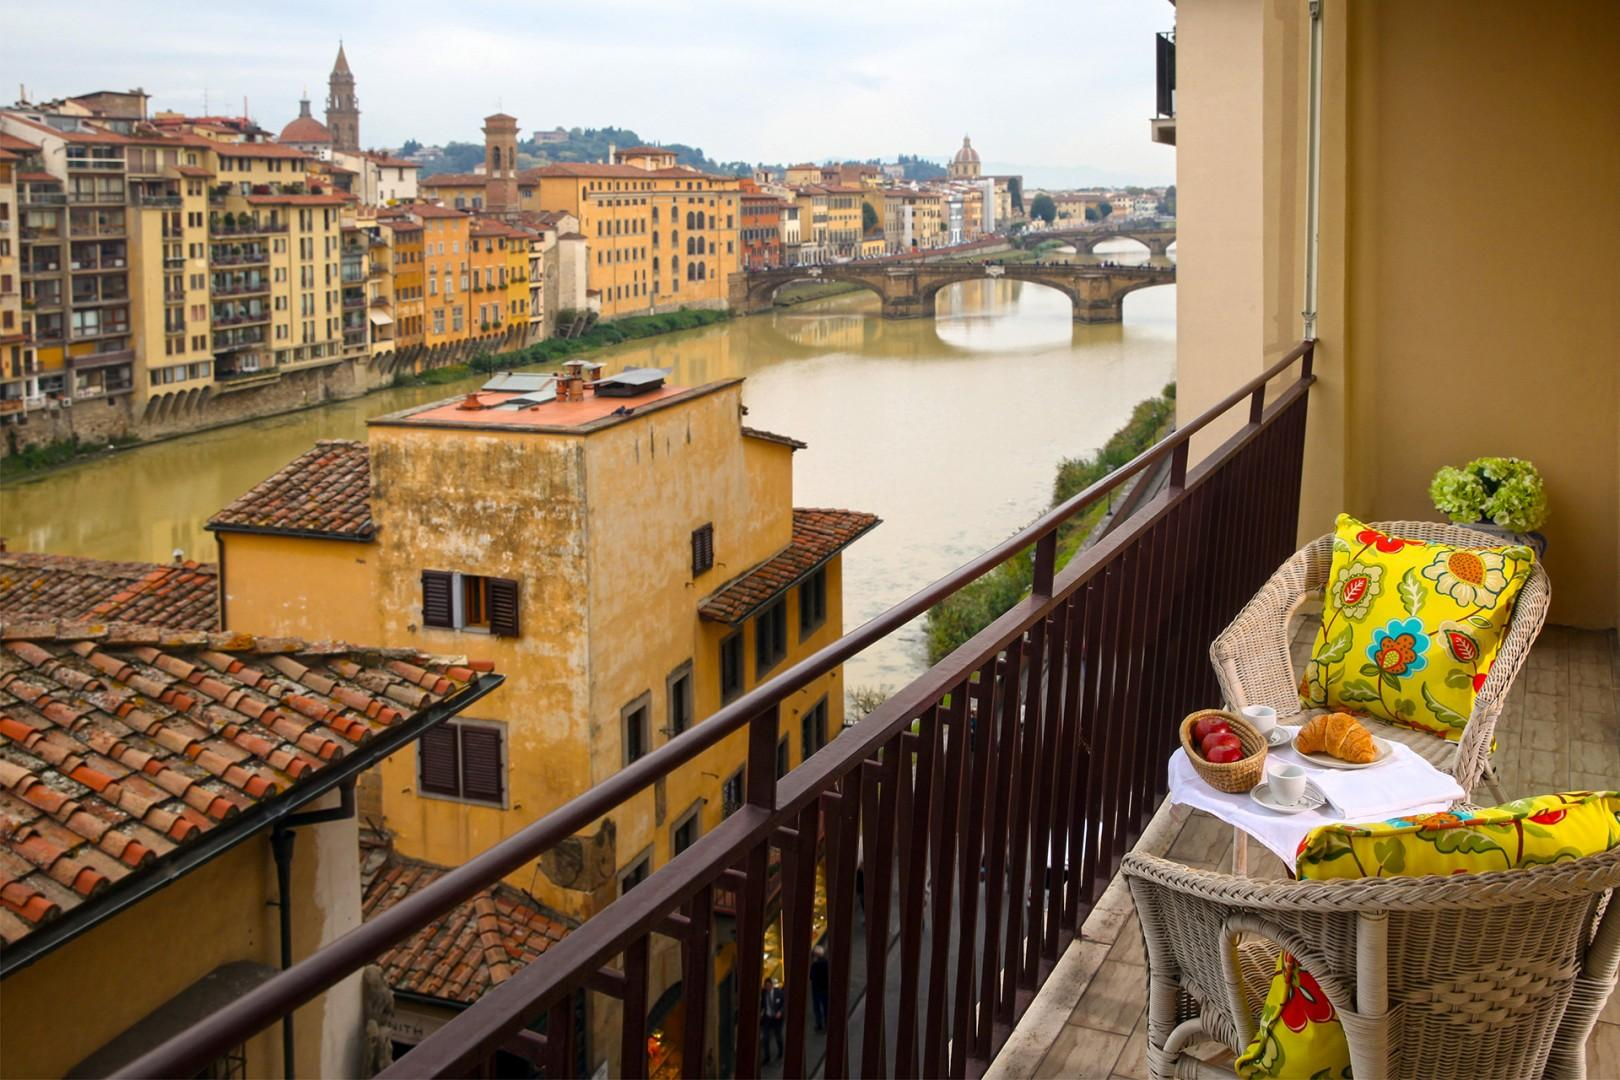 Step out onto the terrace and drink in the views. The narrow terrace has a table and two chairs.